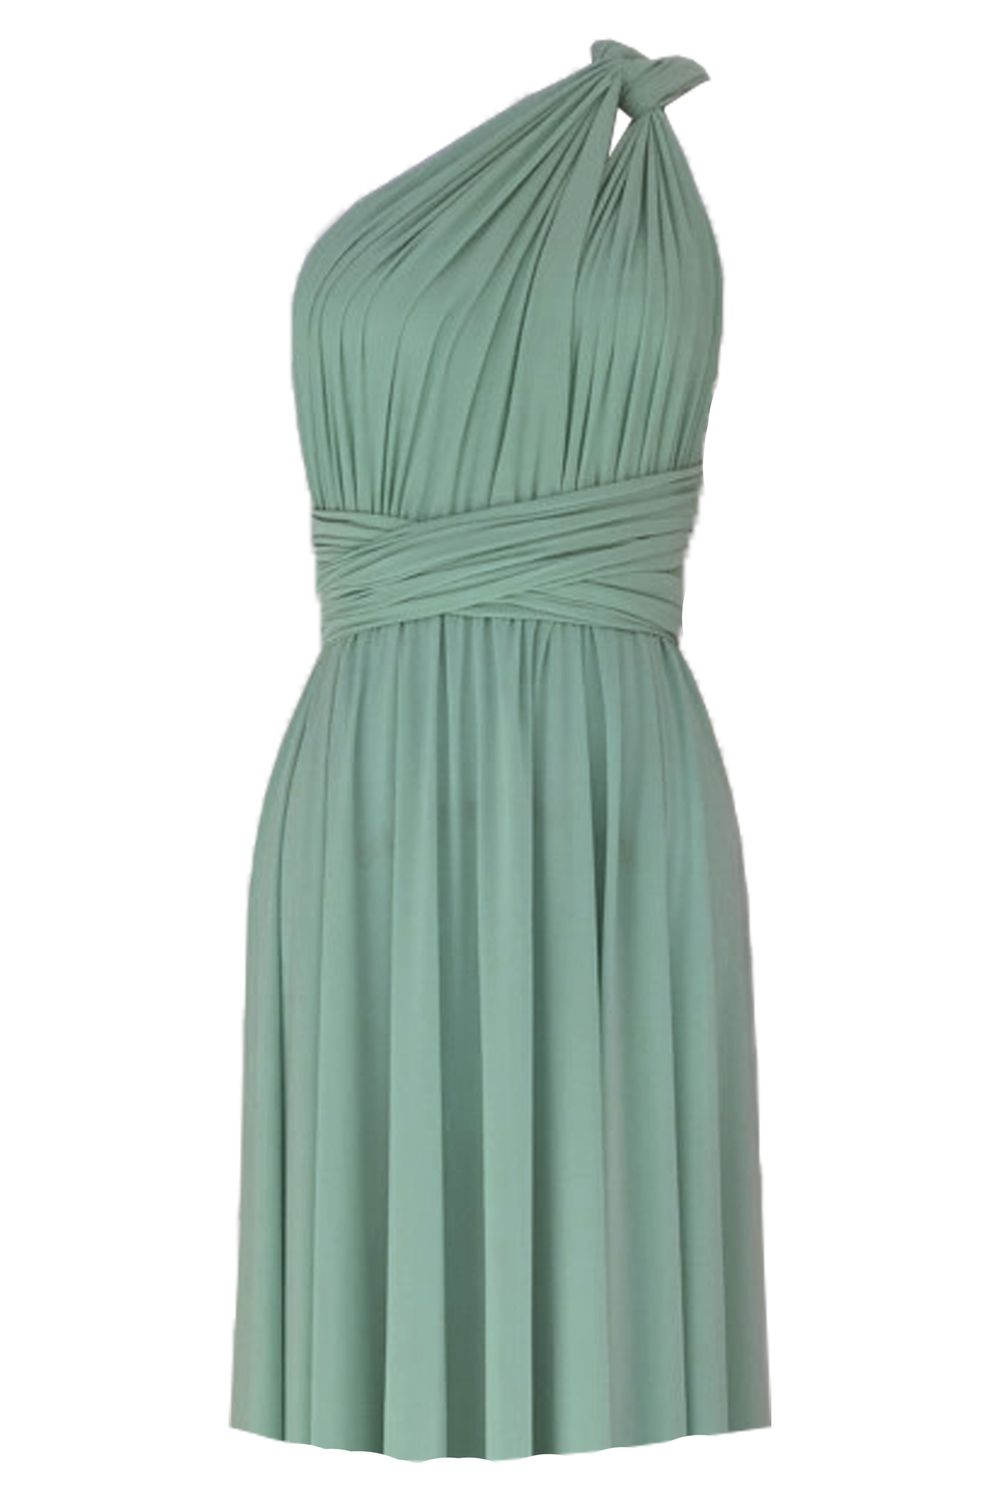 Convertible bridesmaids dress Sage green infinity knee length dress Plus size prom evening formal dress XS S M L XL 0XL 1XL 2XL 3XL 4XL 5XL #sagegreendress